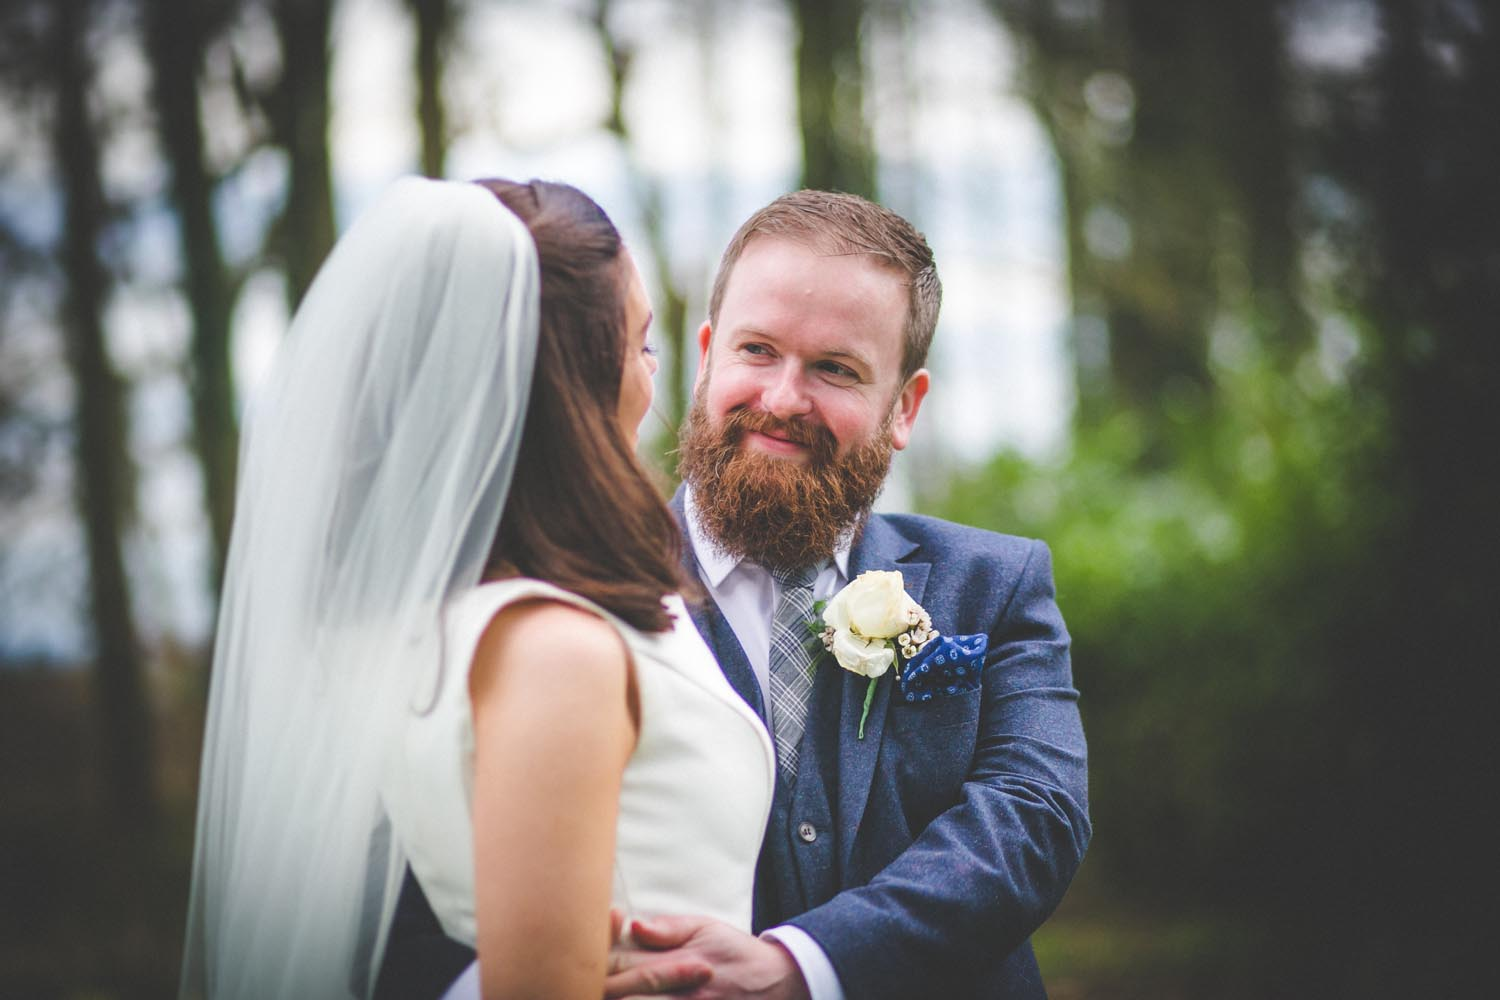 Step House wedding photographer Carlow Borris092.jpg